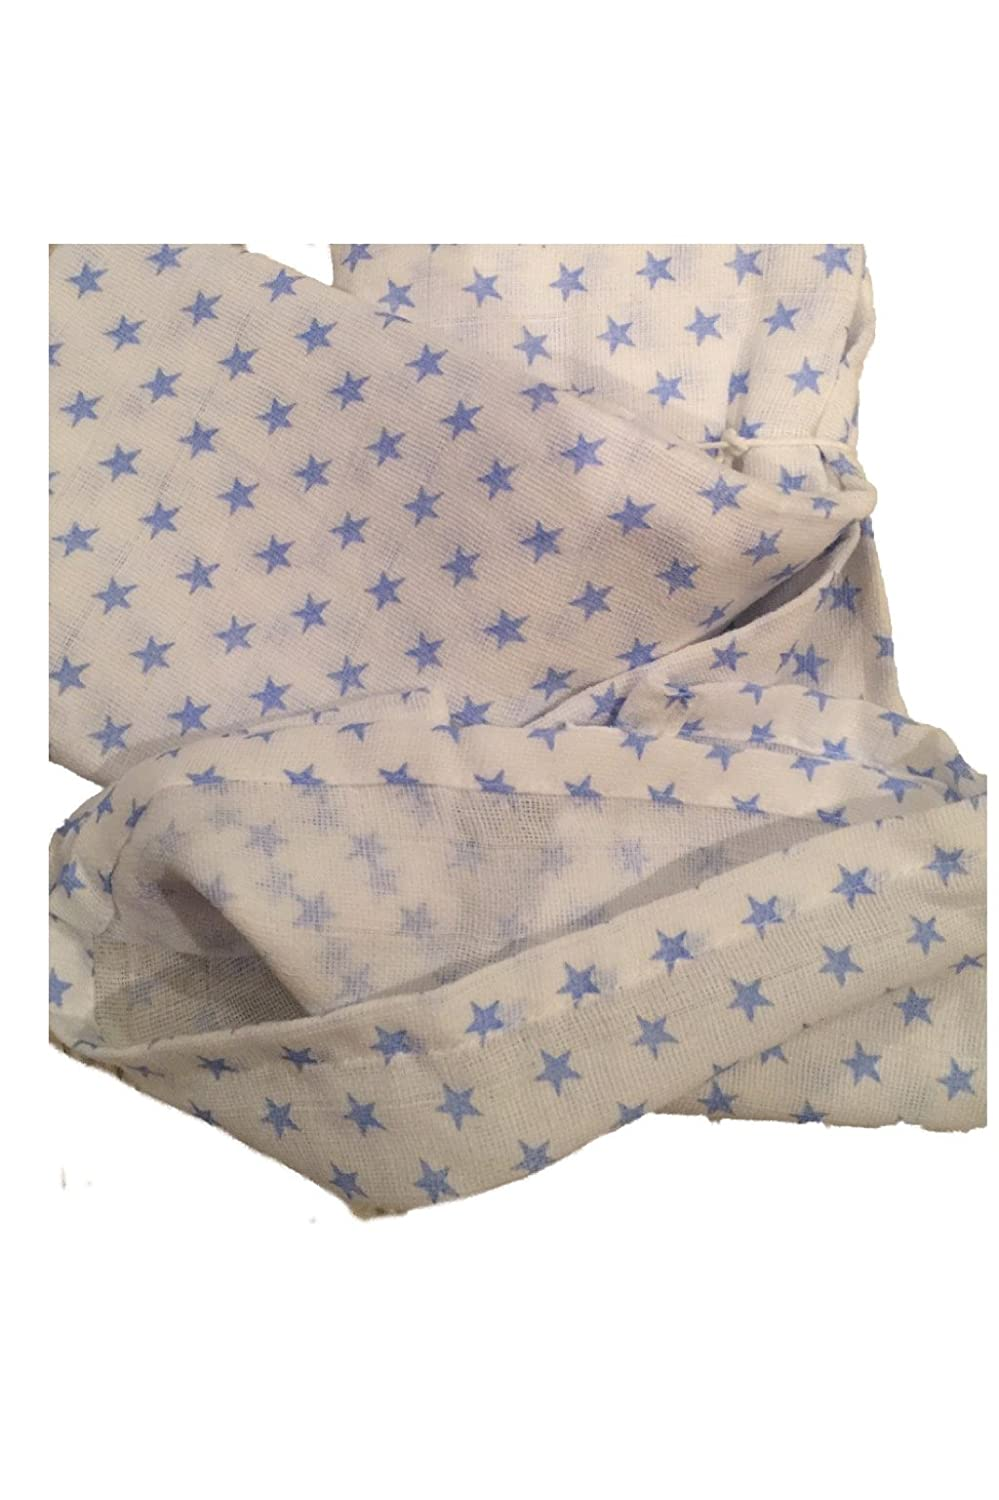 In-Obeytions Muslin Swaddle Blanket-Blue Stars 35 X 35 100/% Cotton India